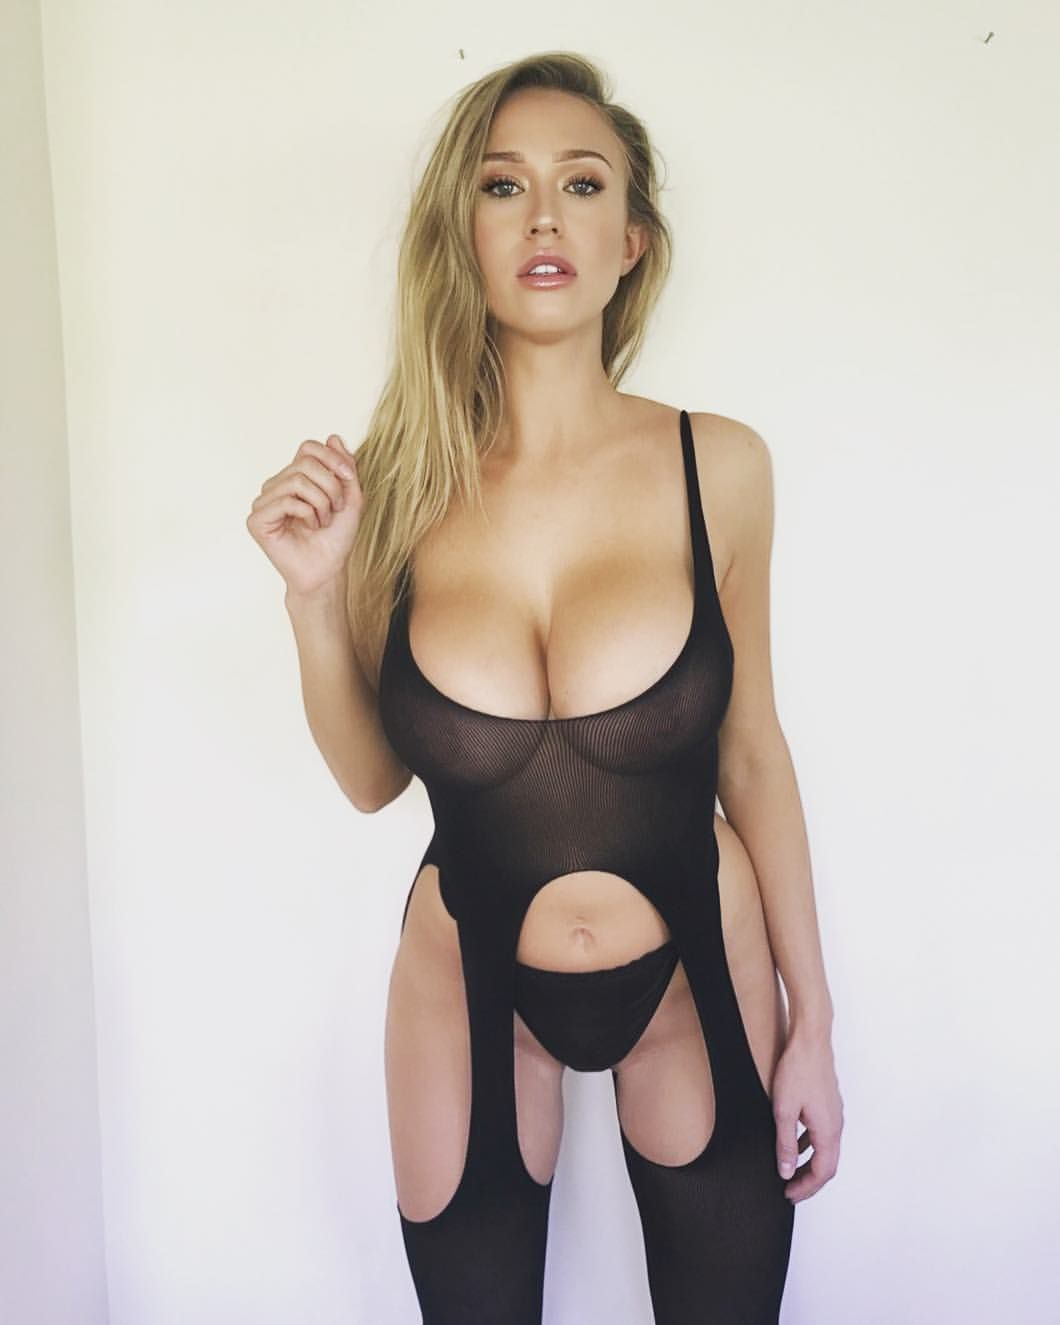 Sophie Reade Boob Size Minimalist 1,994 likes, 78 comments - sophie reade (@sophiereadeofficial) on